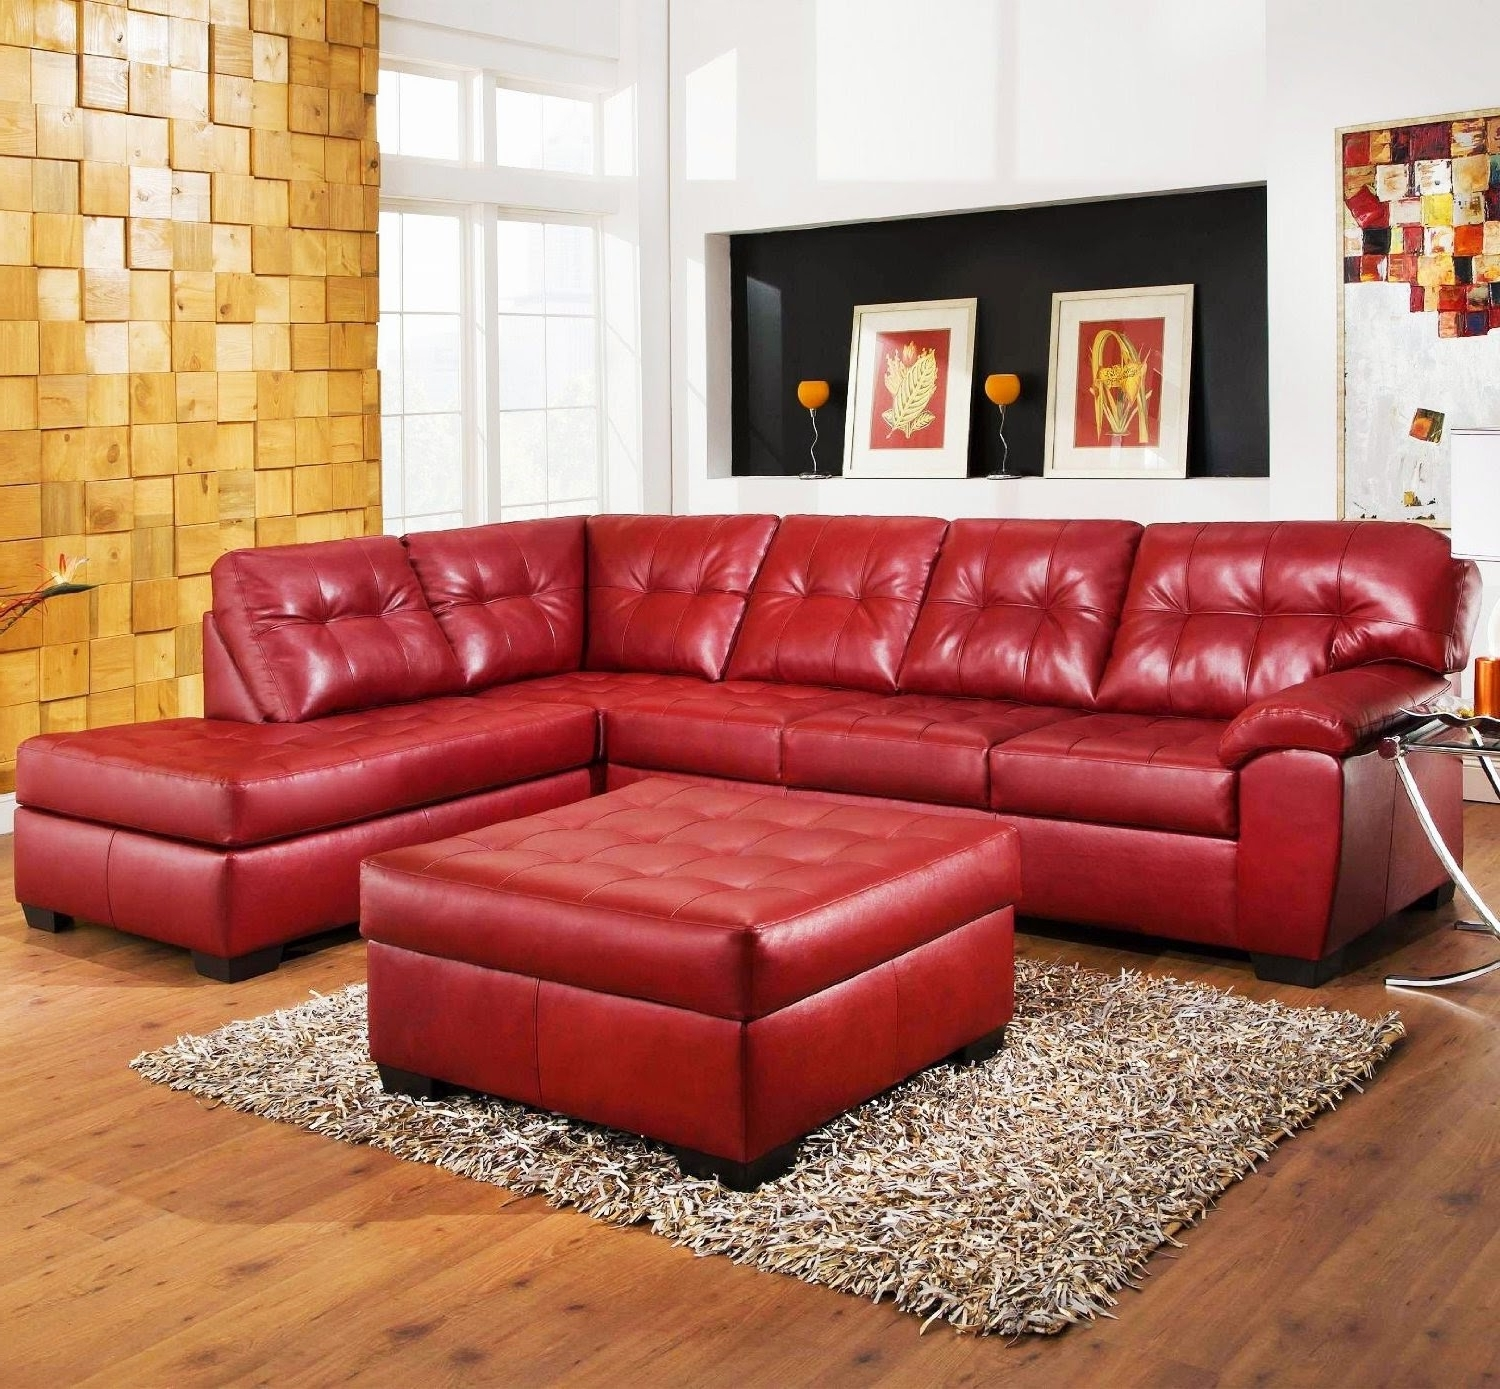 Popular Astonishing Red Couch Leather Pict Of Sofa Concept And Natuzzi With Red Leather Sofas (View 11 of 15)